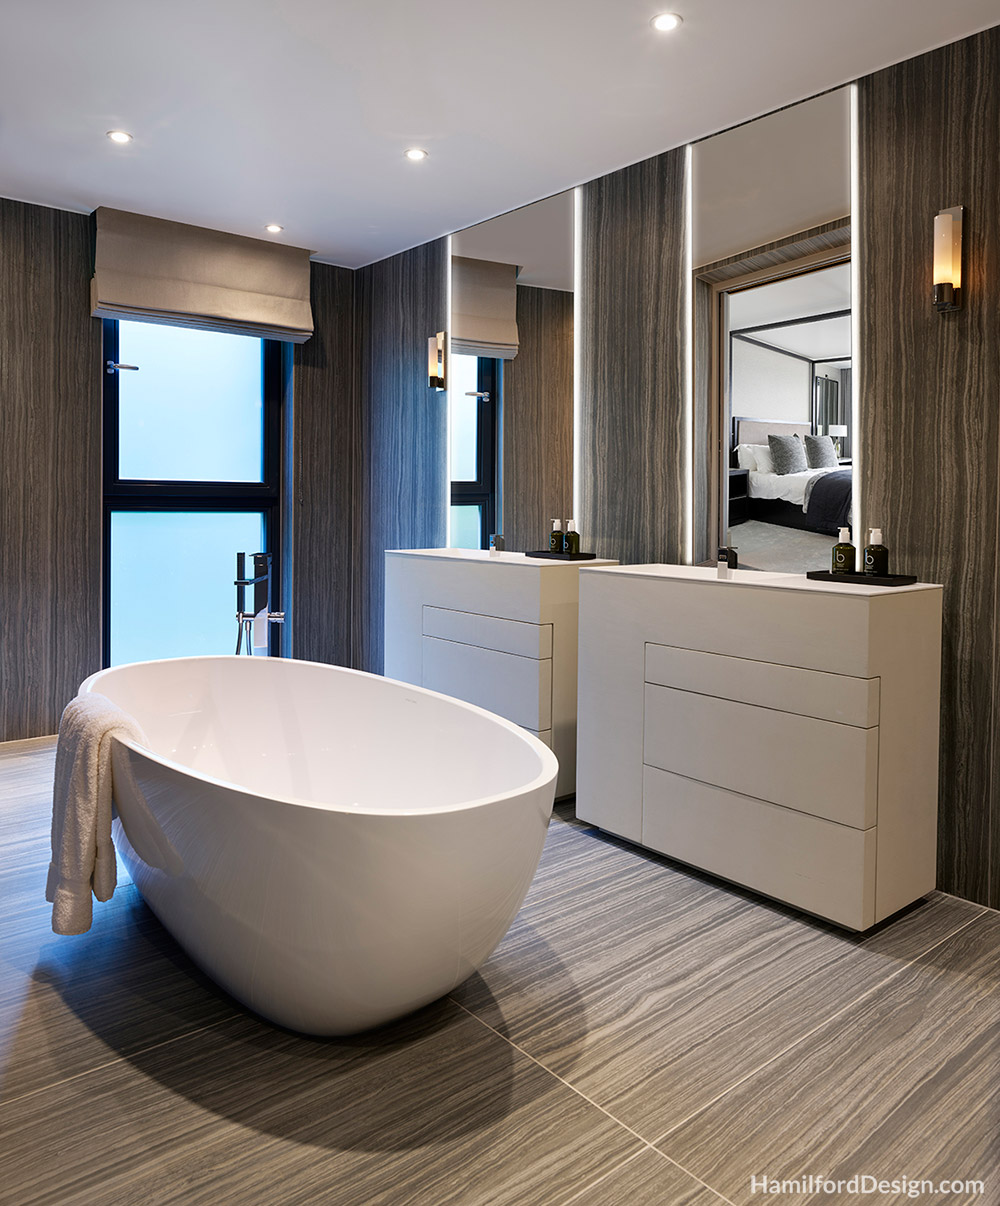 Bathroom - Master Sn-suite with a Free Standing Bath